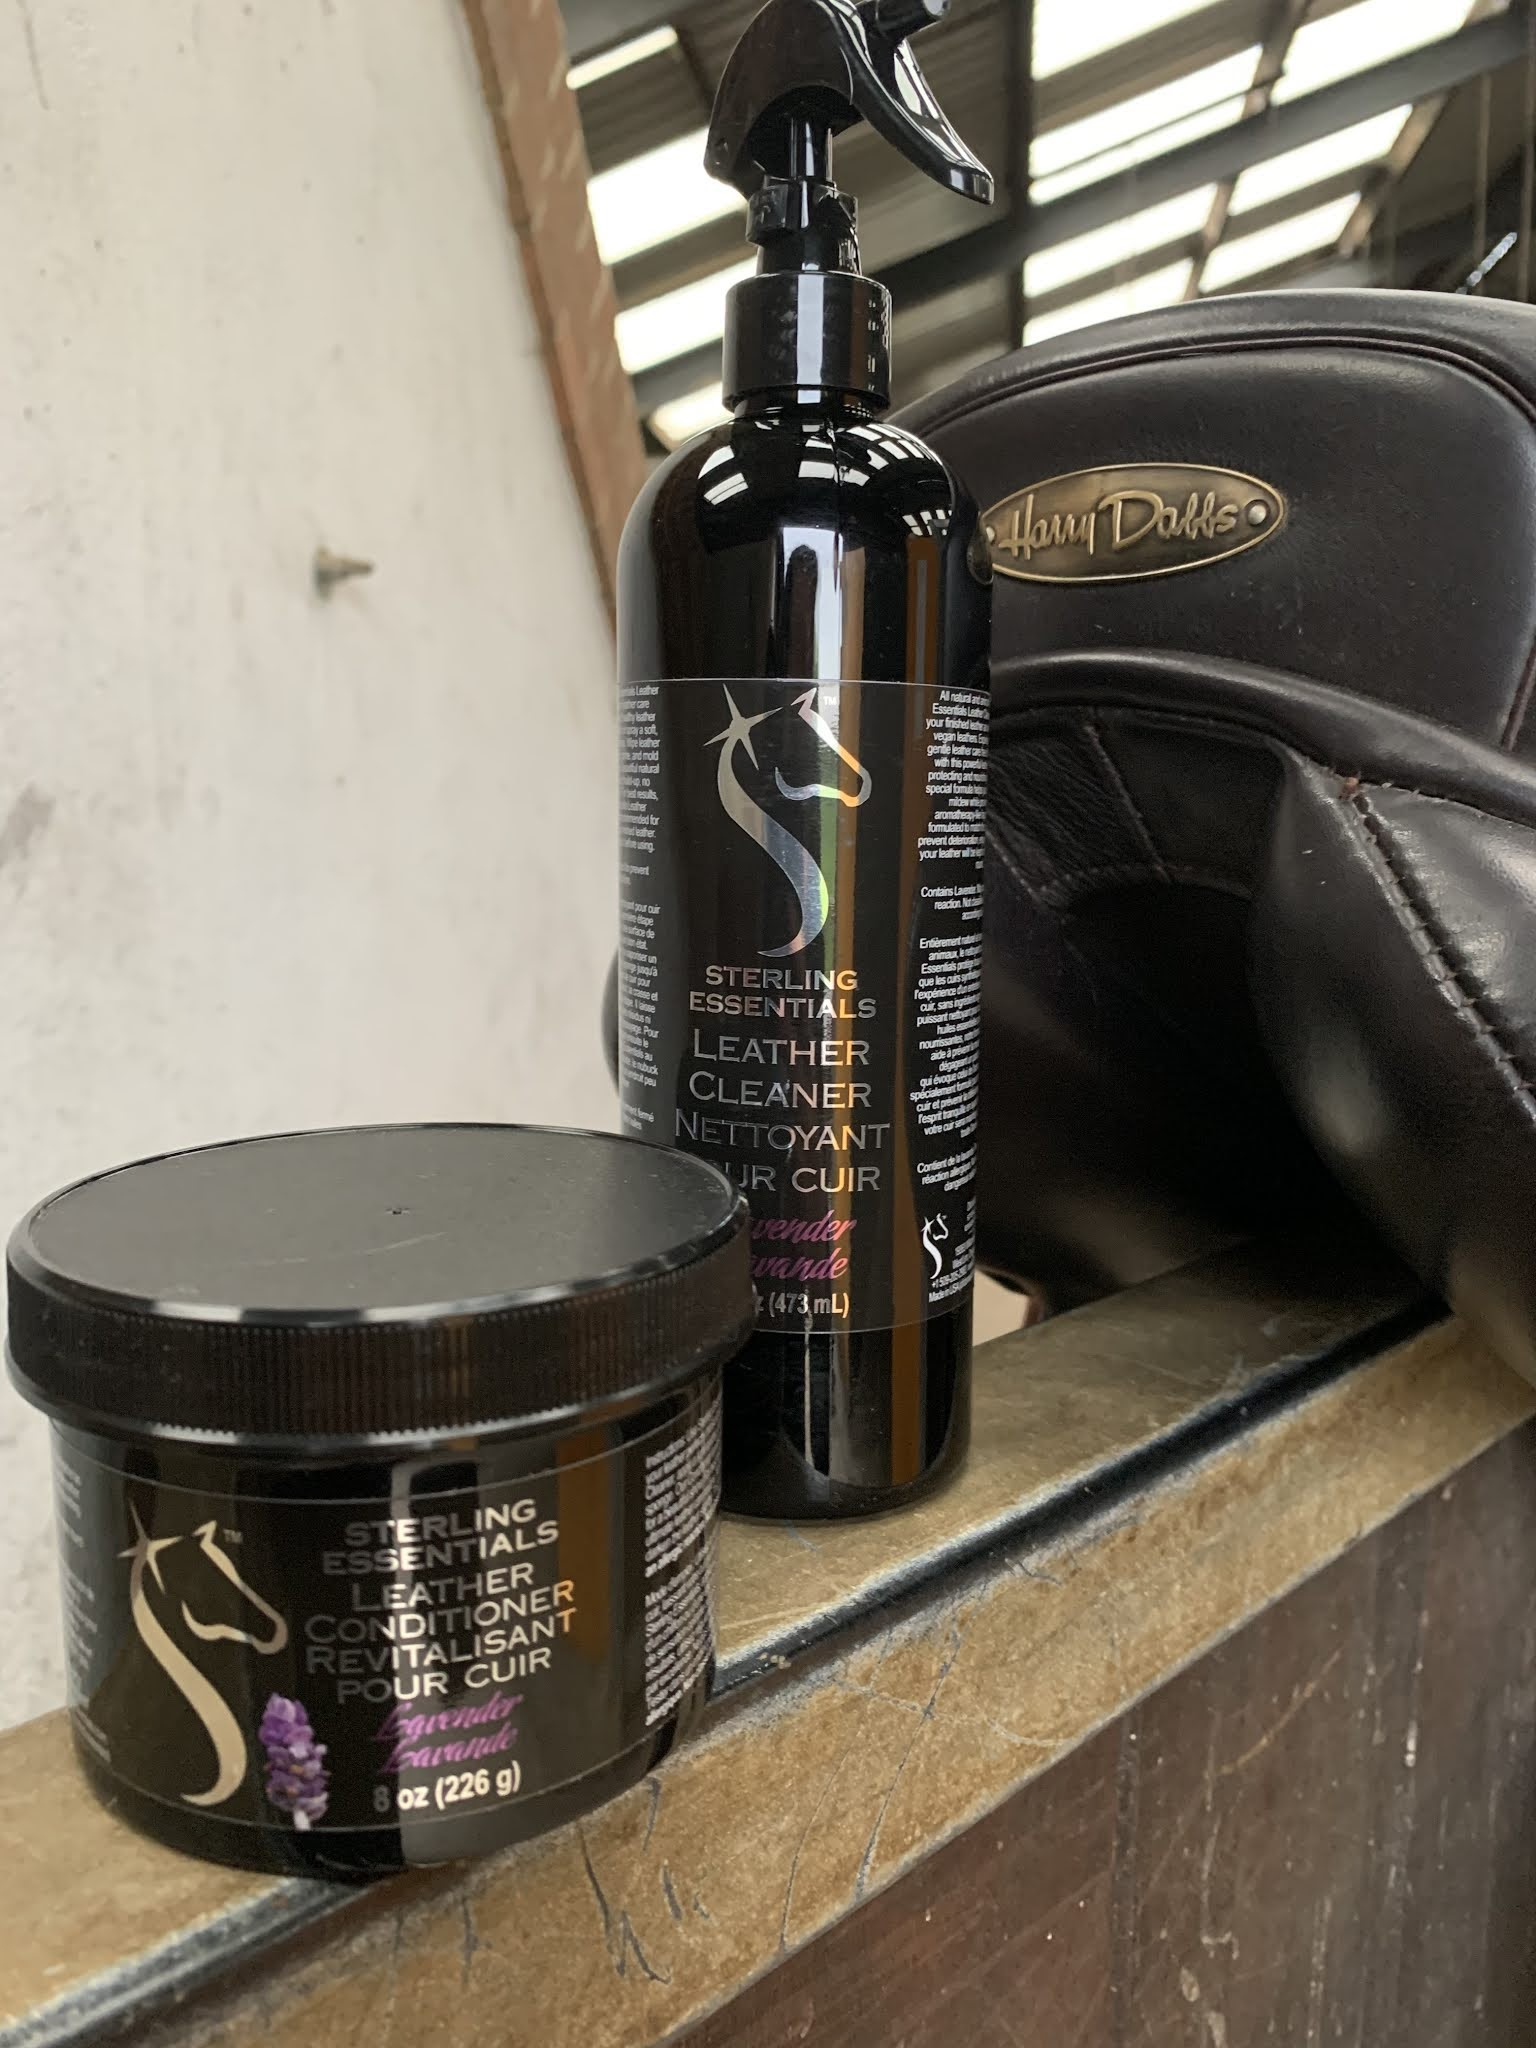 Sterling Essentials Lavender Leather Cleaner & Conditioner